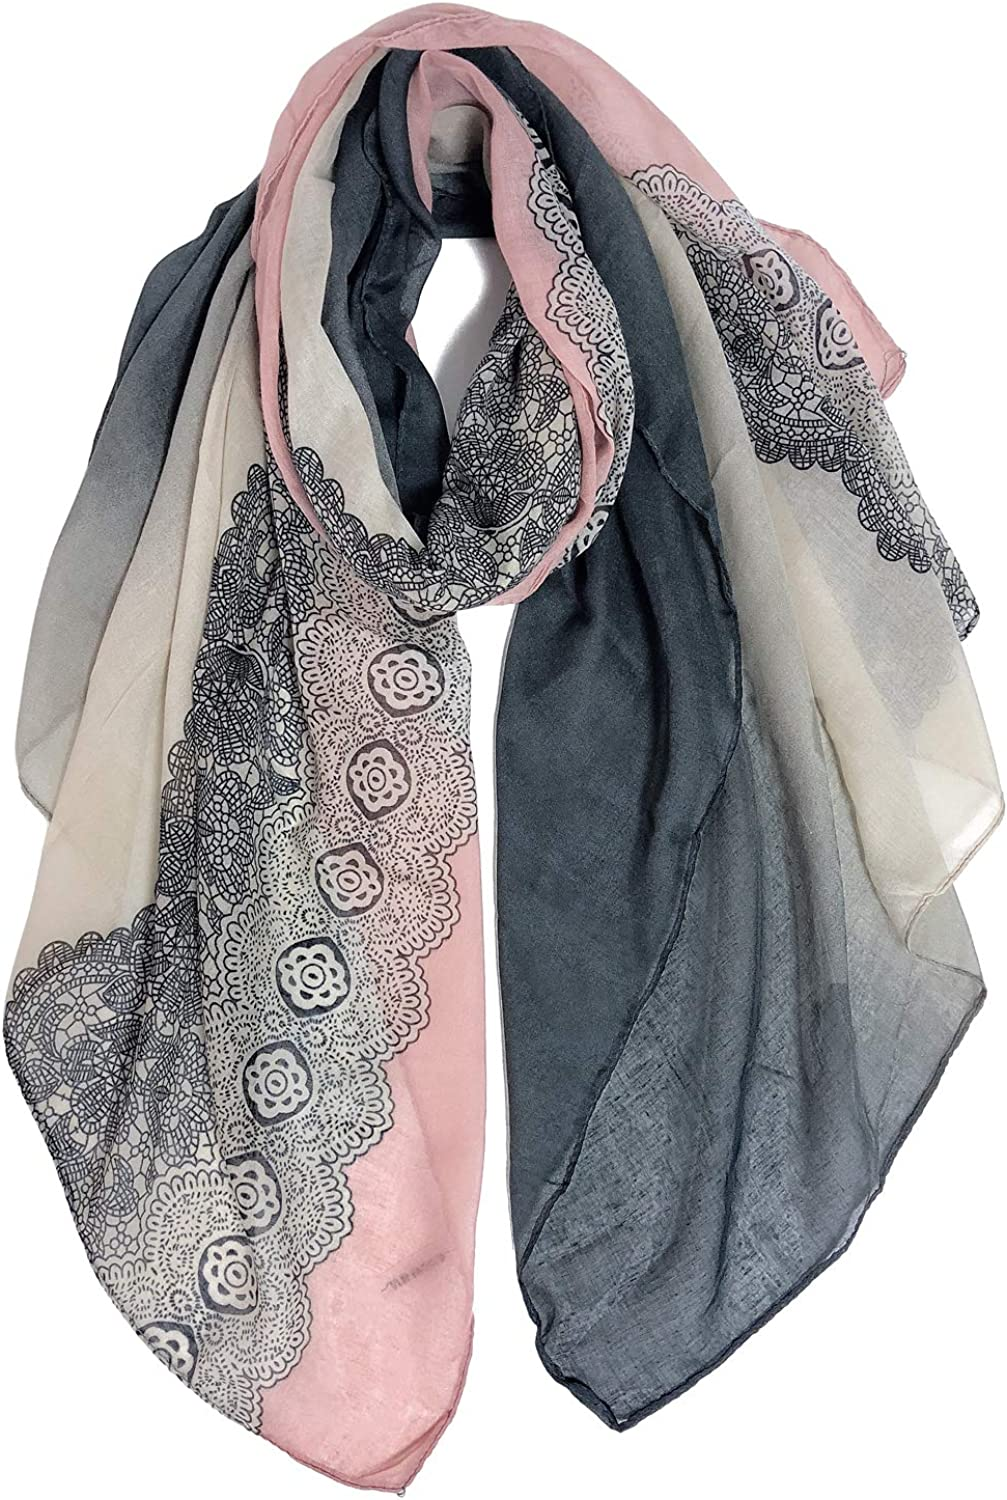 GERINLY All items in the store Stylish Scarves for Women Lightweight Print Time sale Fashion Lace